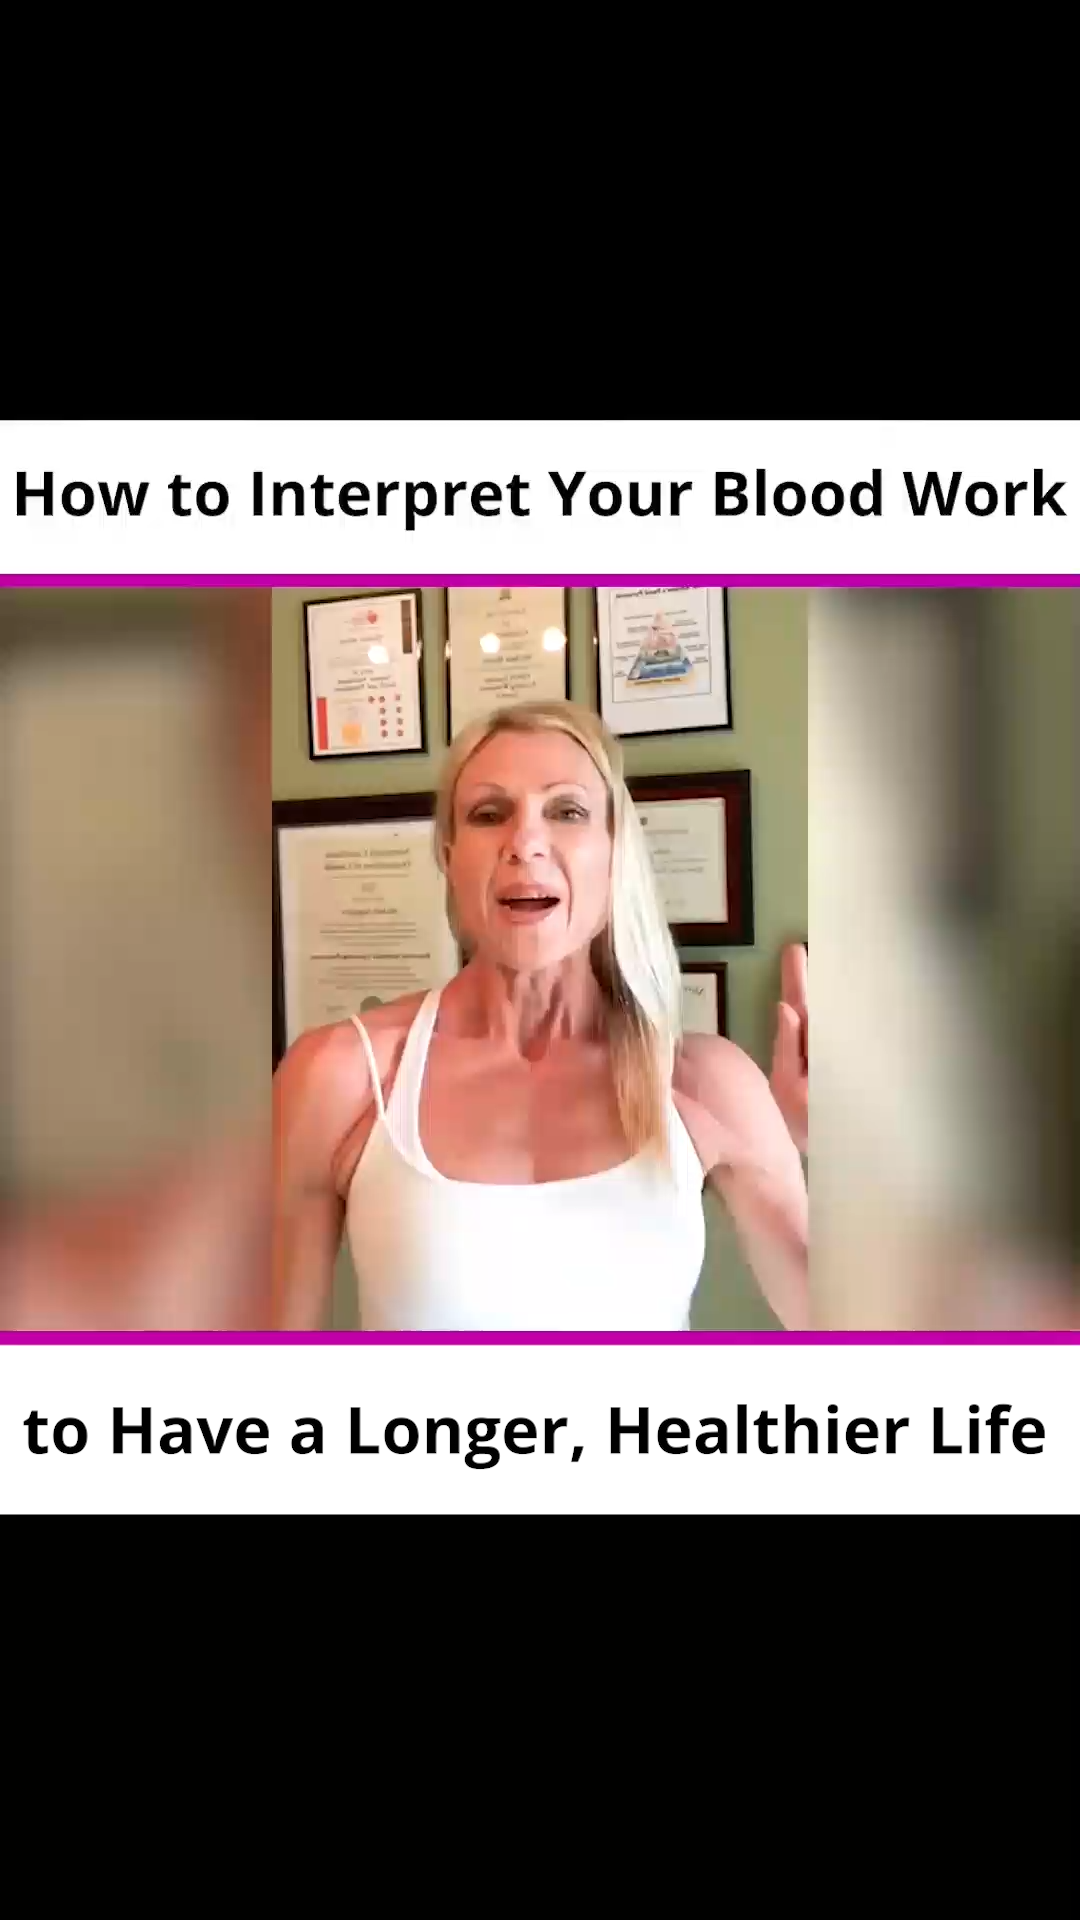 How to Interpret Your Blood Work to Have a Longer, Healthier Life